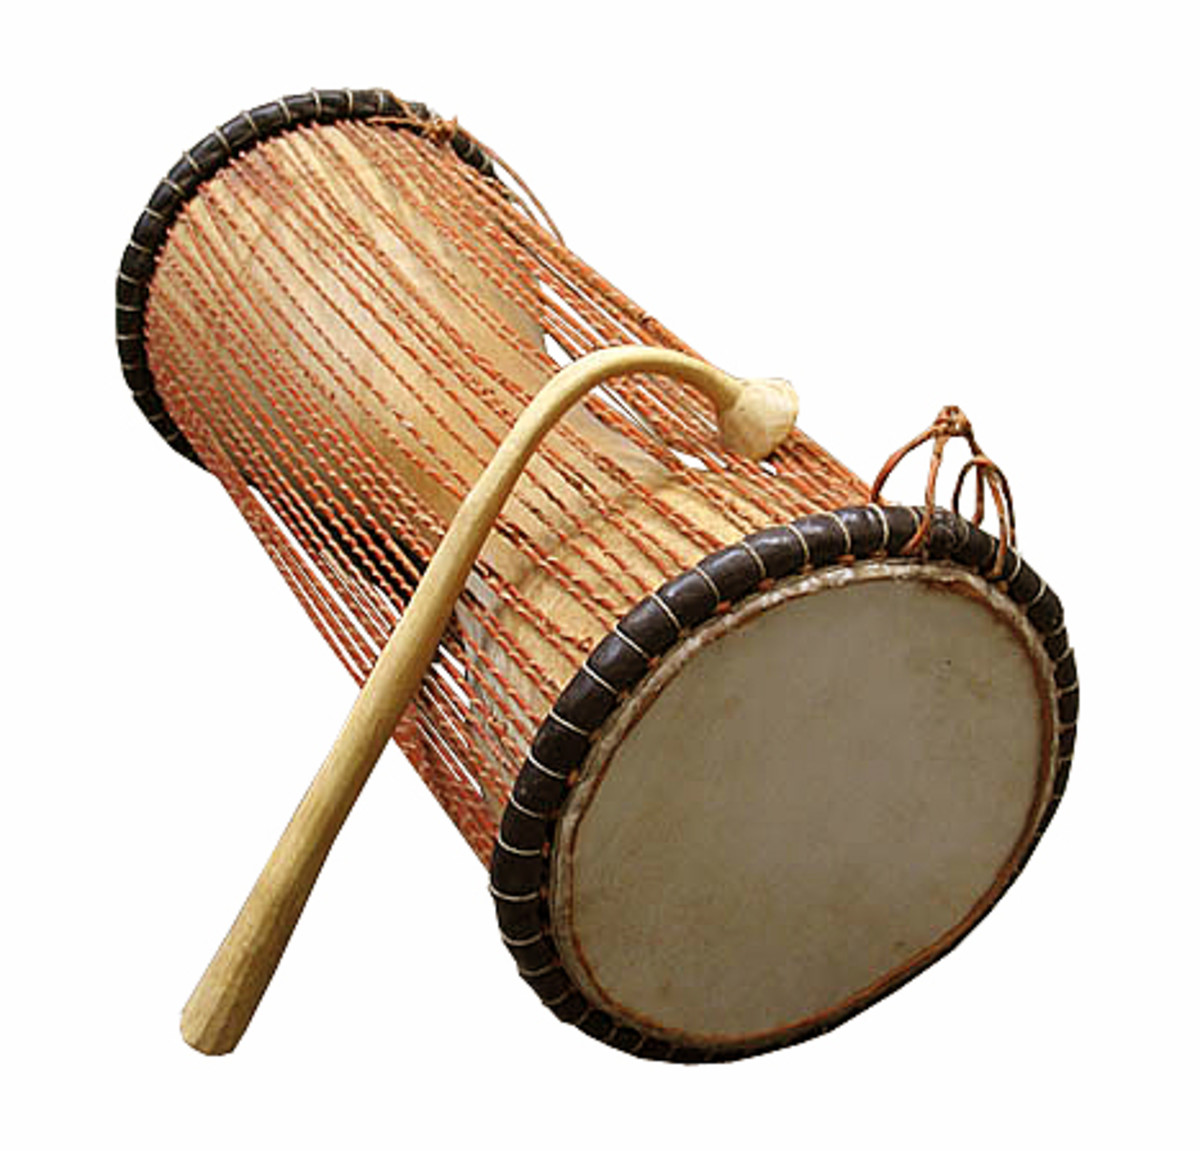 The talking drum Tama